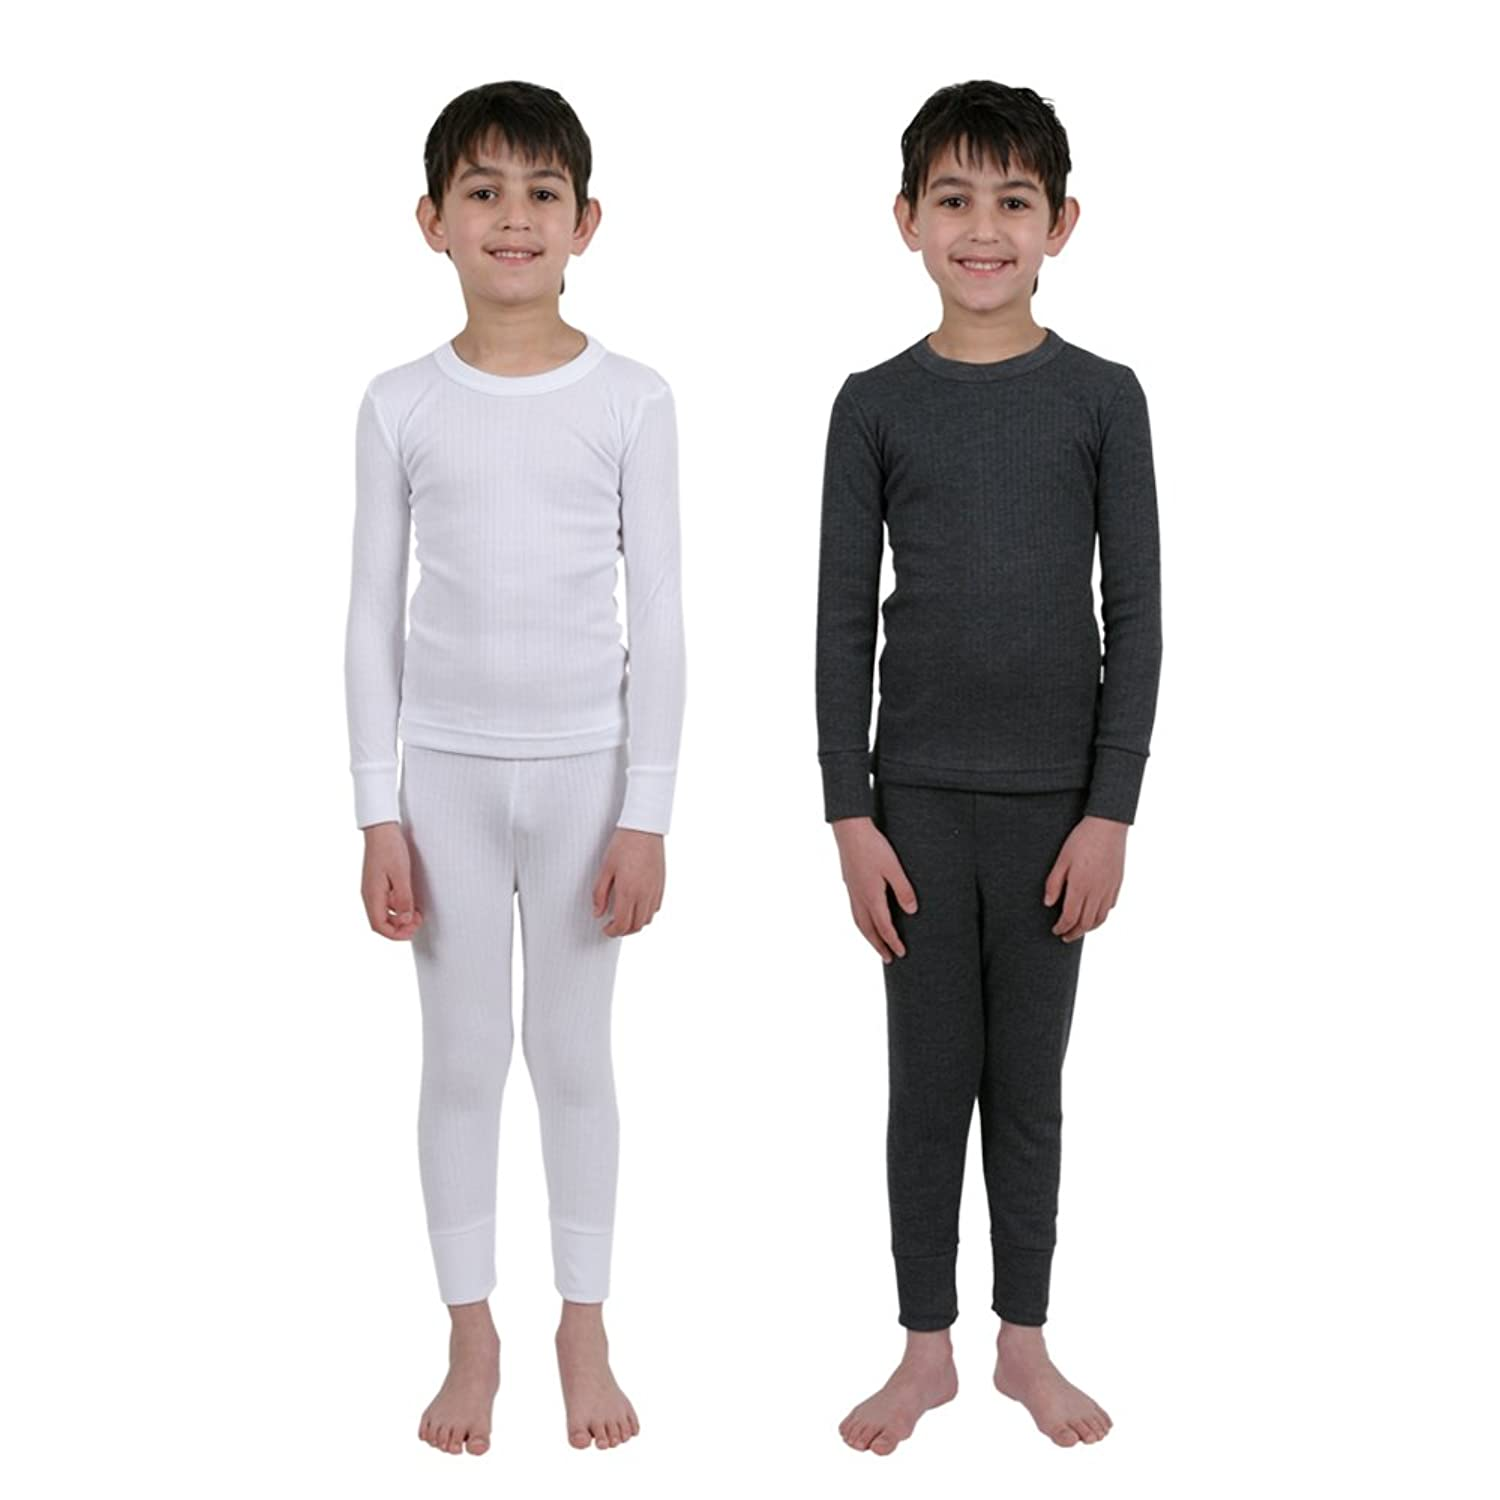 Set 2 Colours Childrens Thermal Underwear Long Sleeve Vest